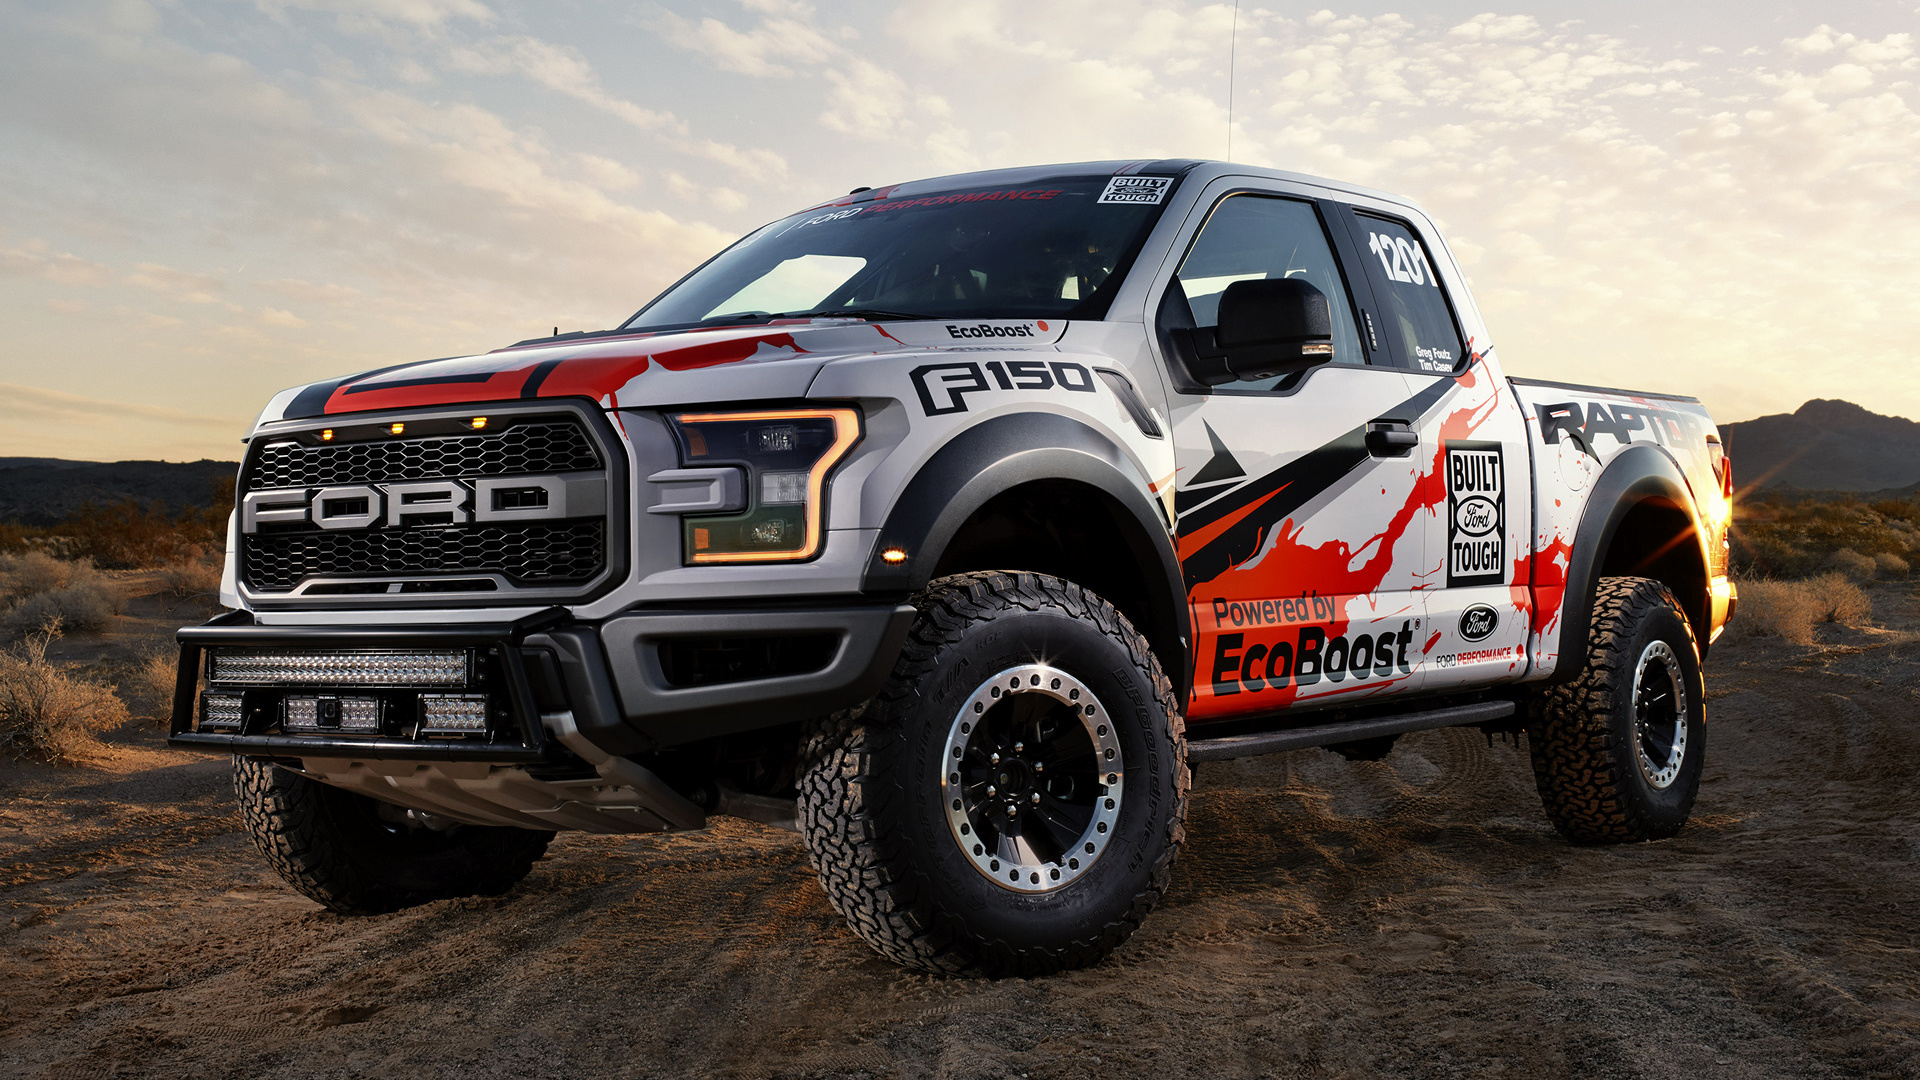 Ford F 150 Raptor Race Truck 2017 Wallpapers and HD Images 1920x1080